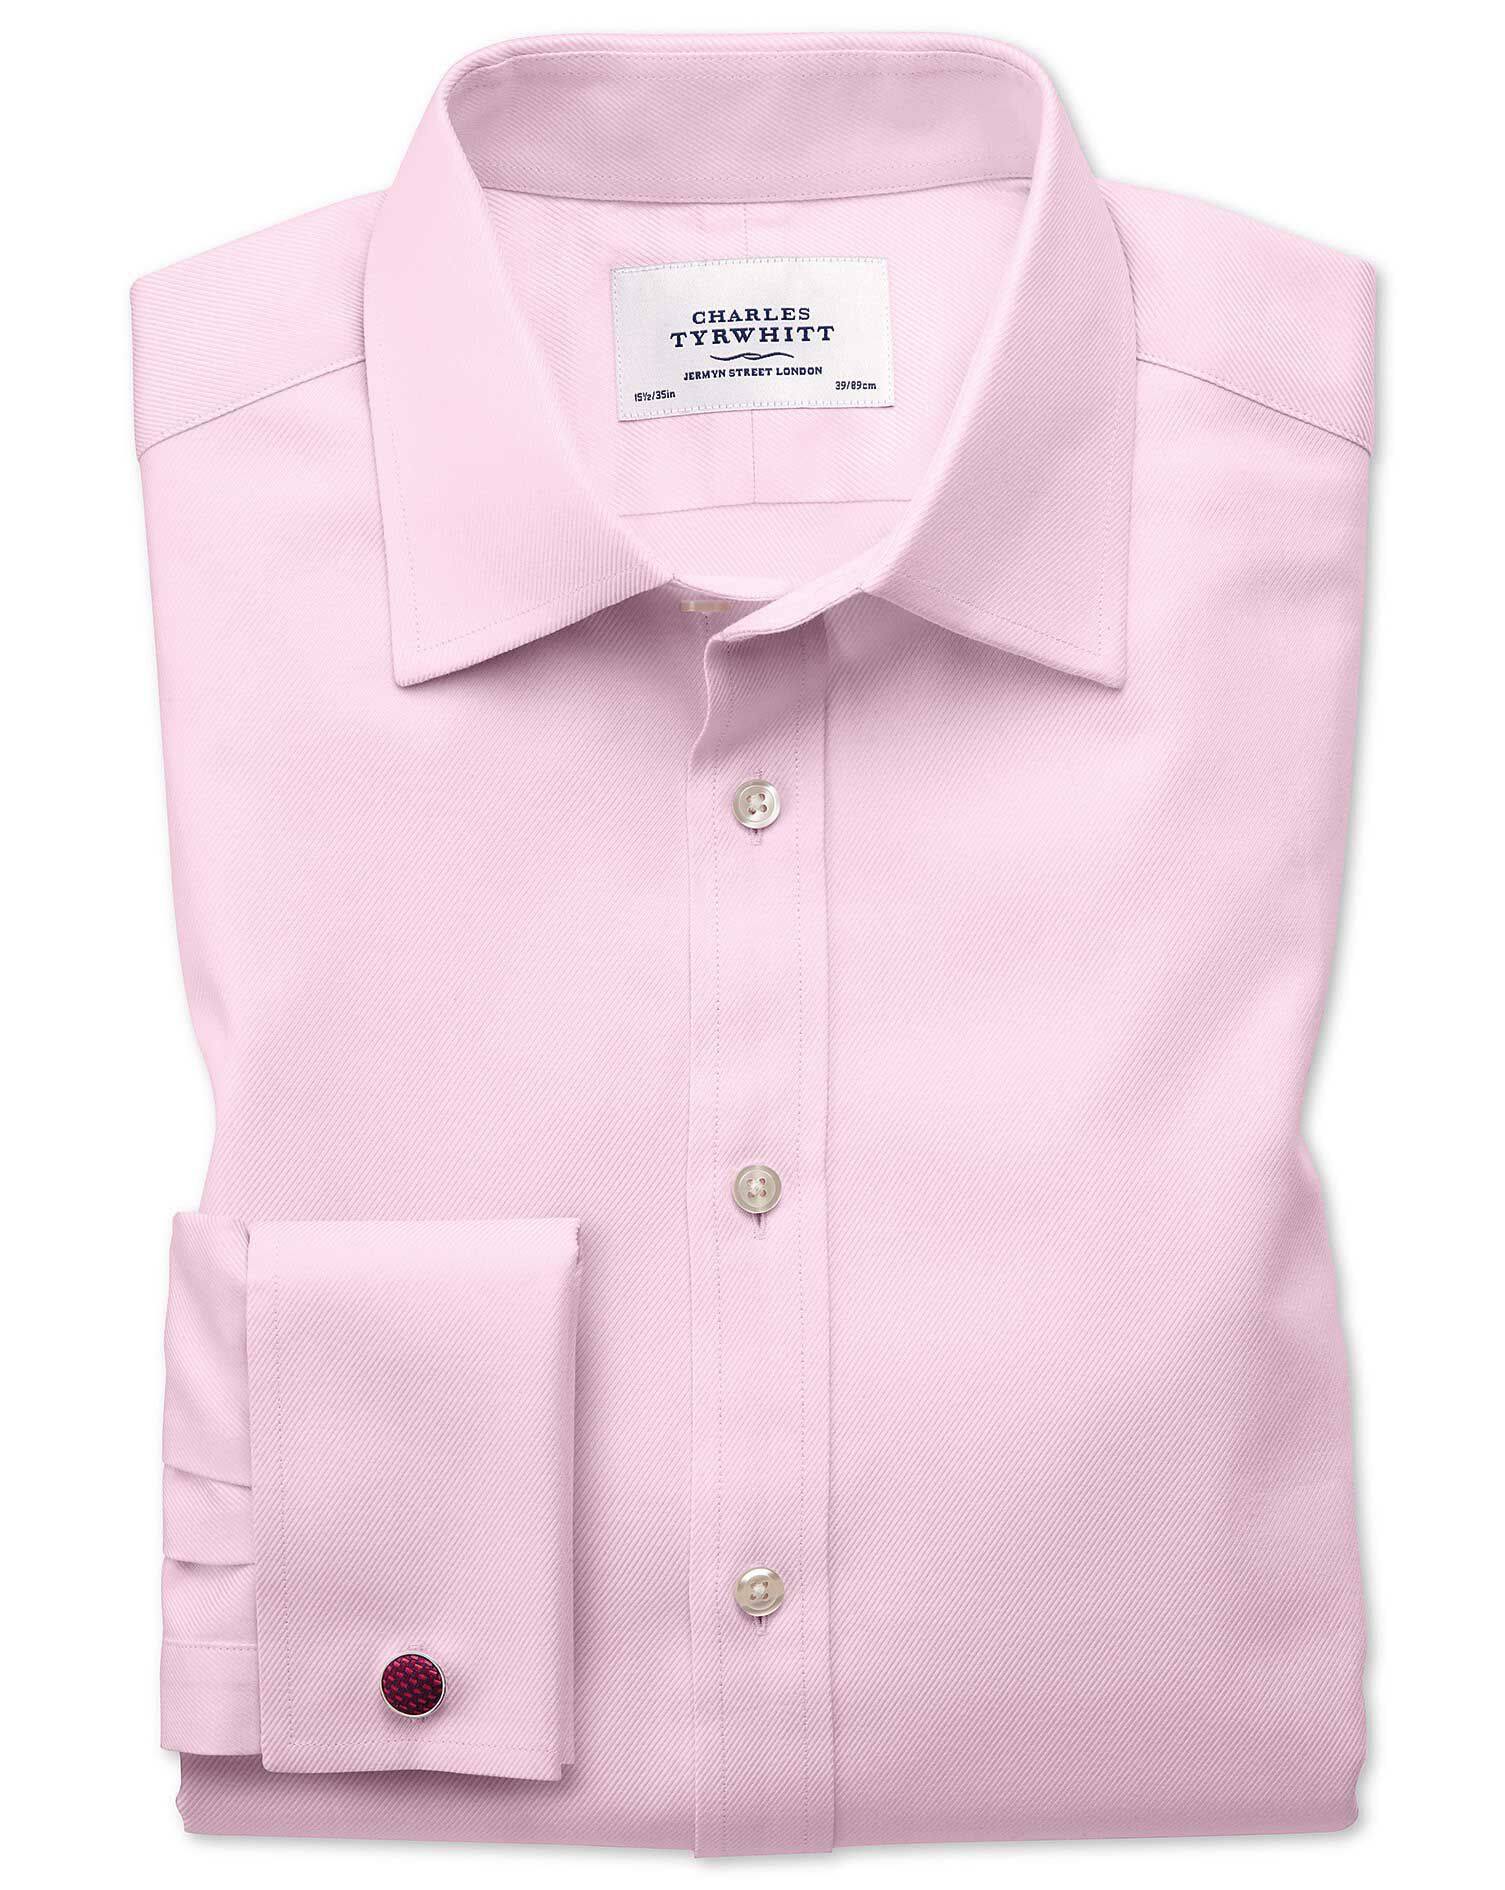 Extra Slim Fit Egyptian Cotton Cavalry Twill Light Pink Formal Shirt Single Cuff Size 16/32 by Charl